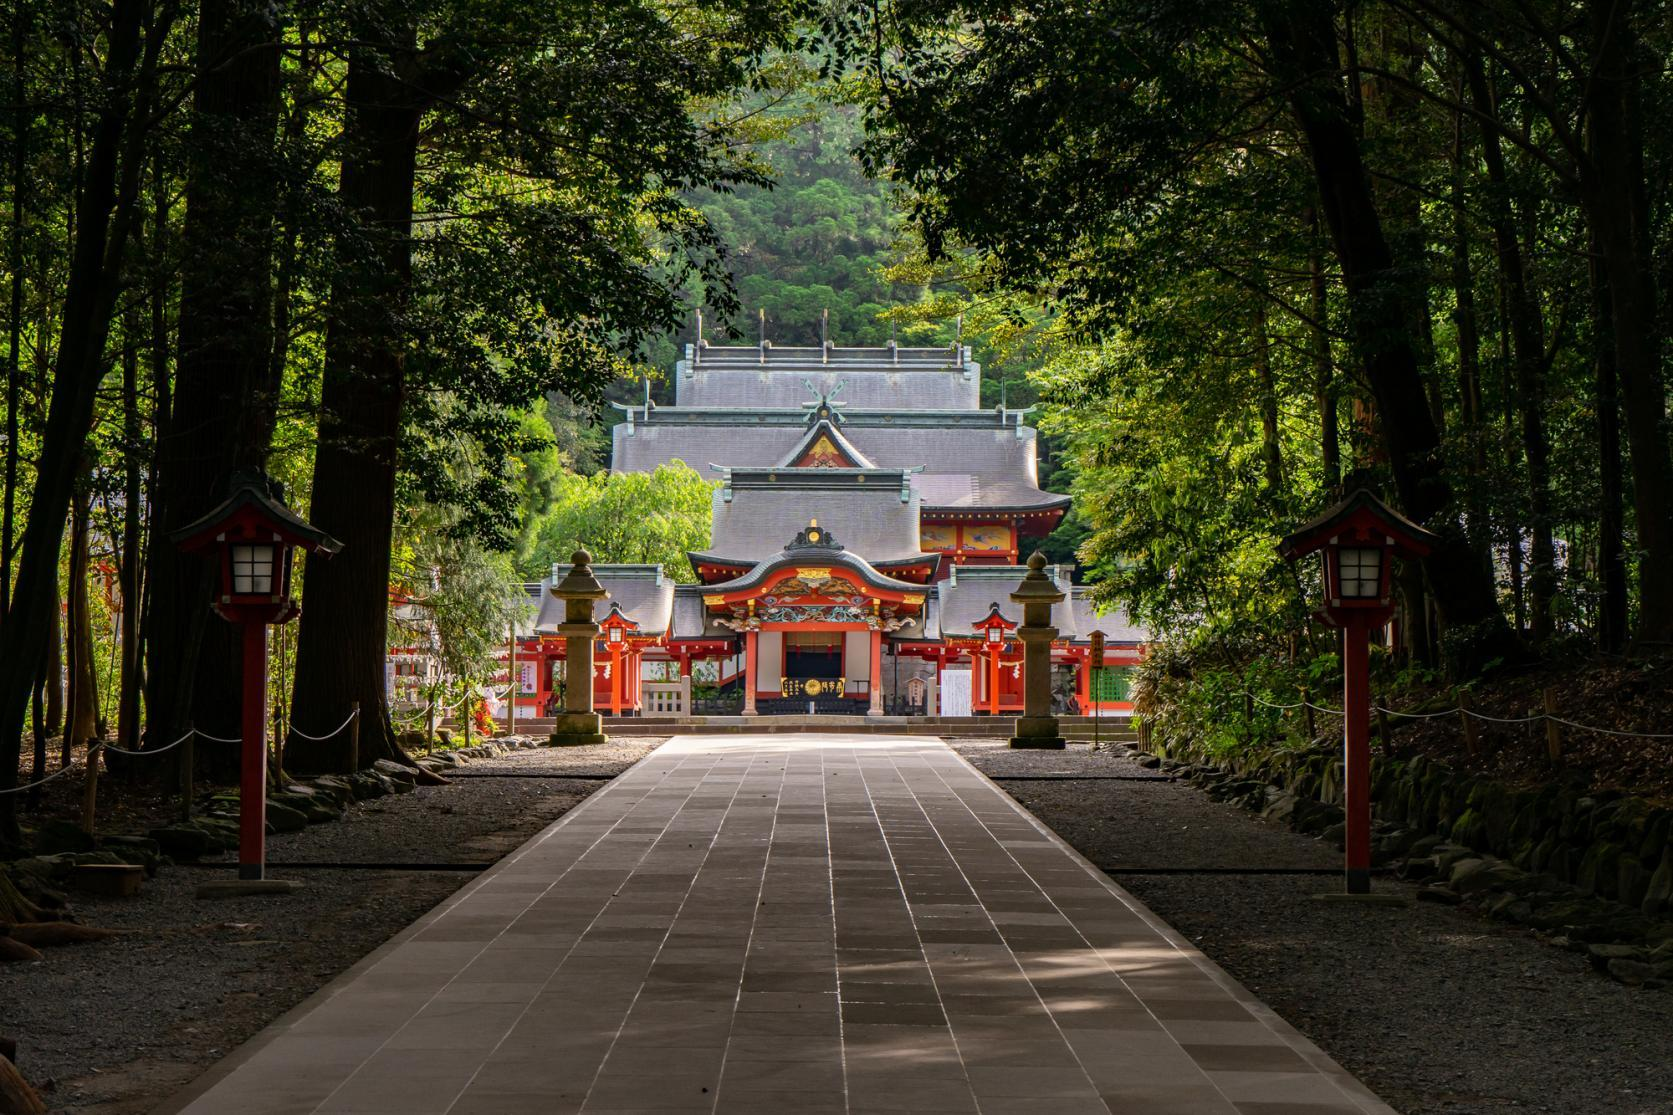 [Kirishima City] Kirishima Jingu Shrine-1